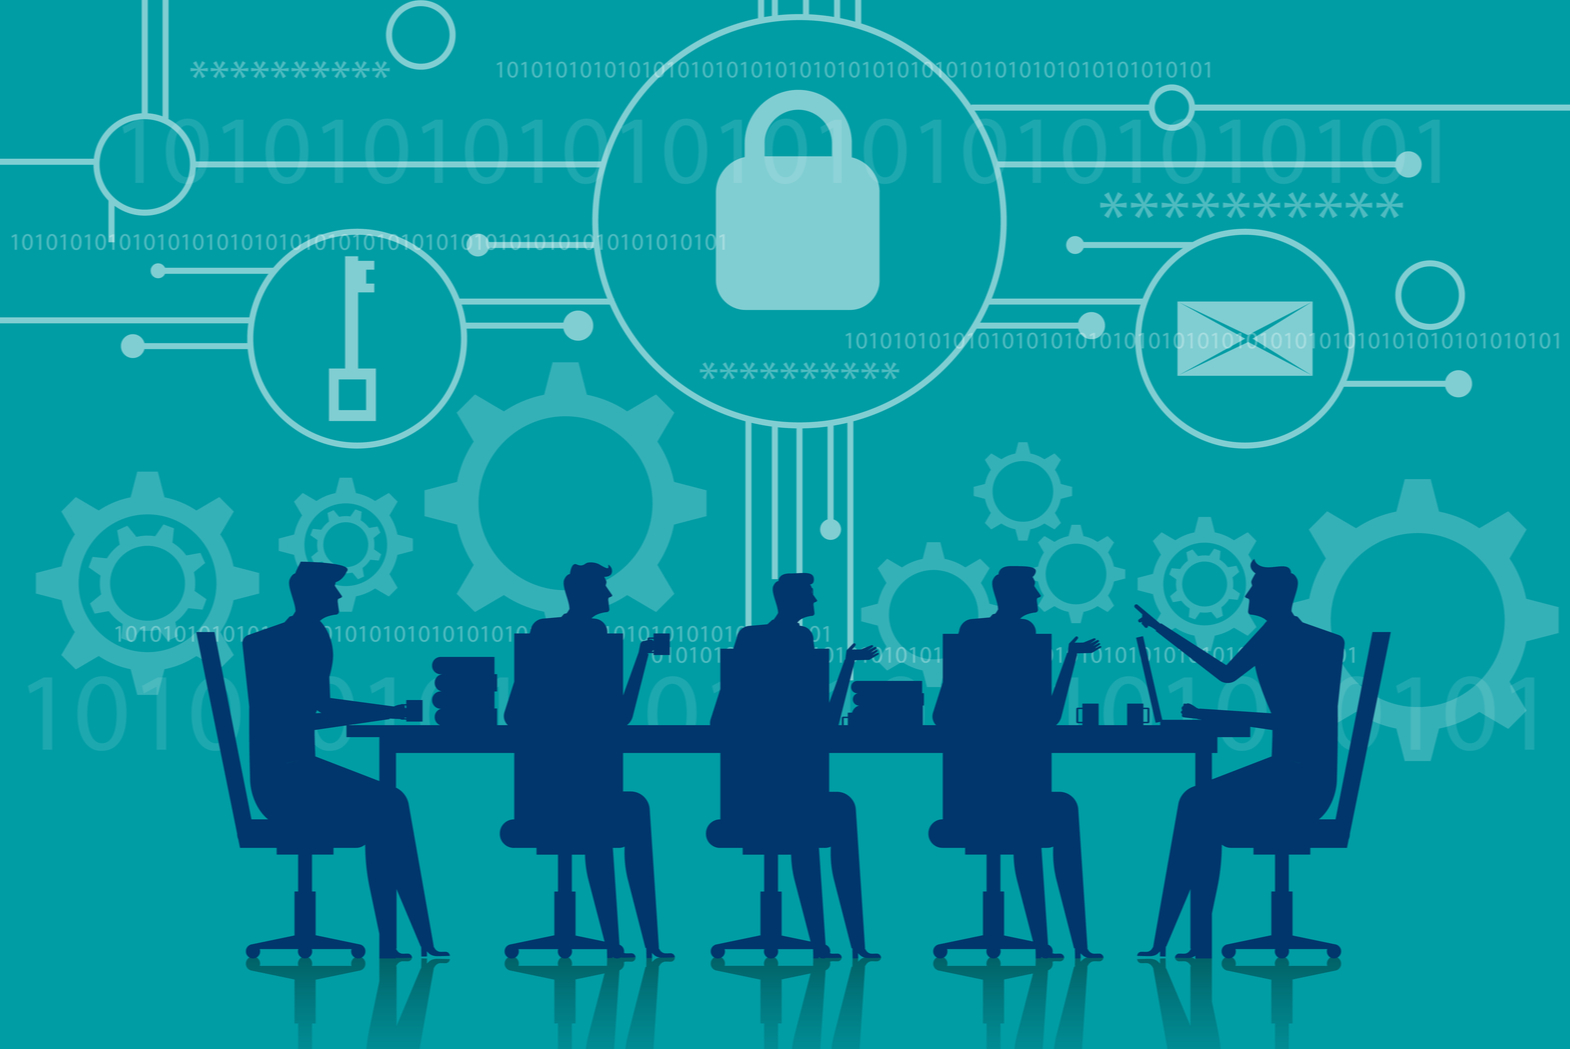 Three key areas organisations must protect from cybercriminals